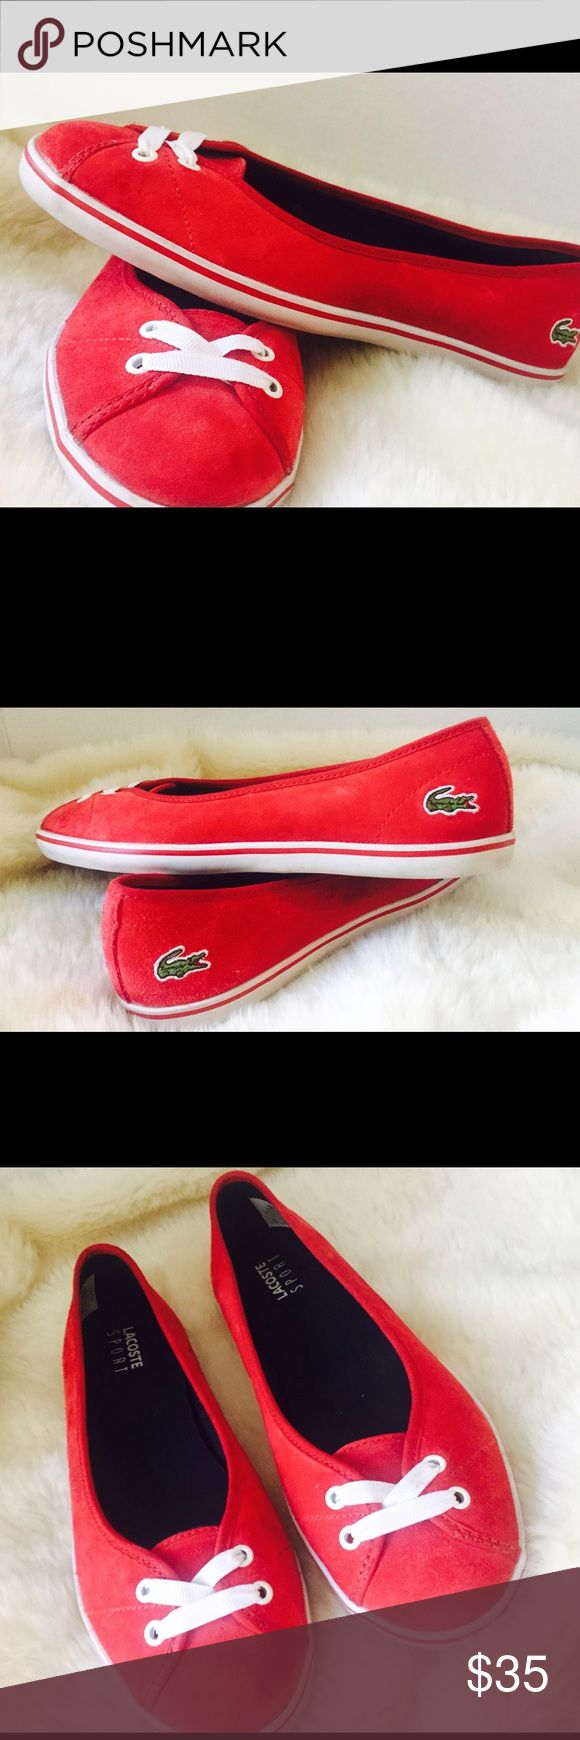 Lacoste ‼️sale‼️ Ladies lacoste sport sneakers  Size 7 Light and comfortable   $35 Lacoste Shoes Sneakers